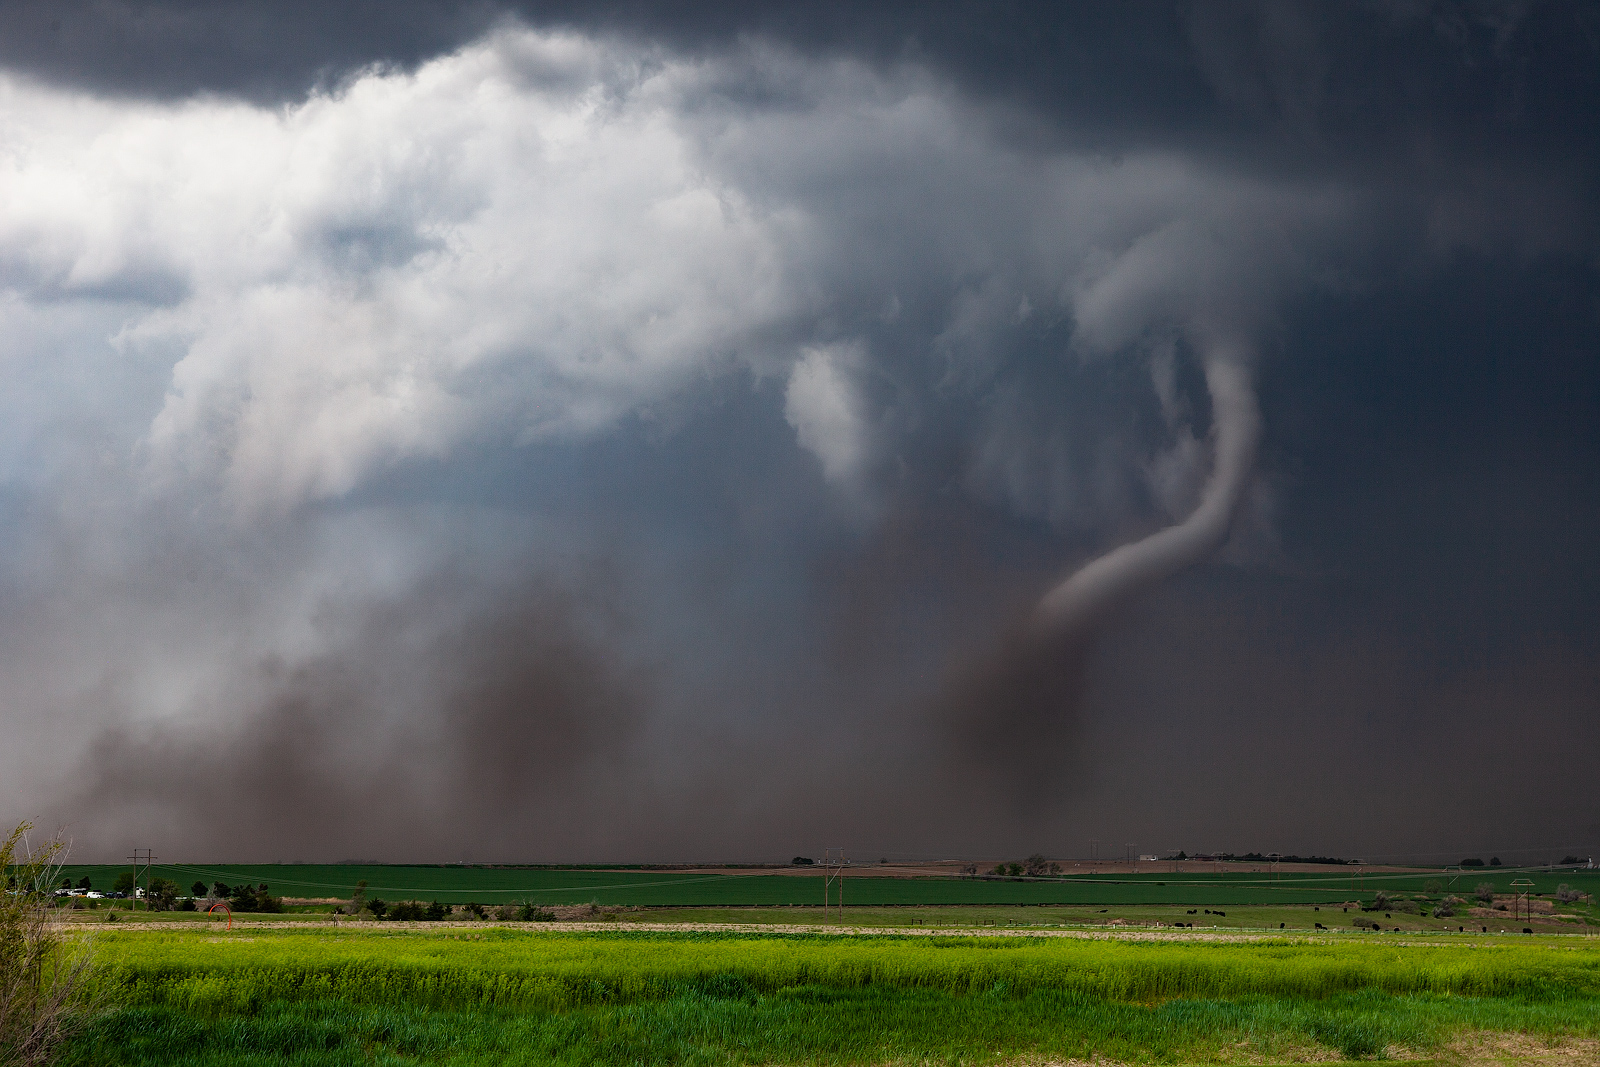 The McCook tornado roping out nearing the end of its life cycle on 5/17/19.